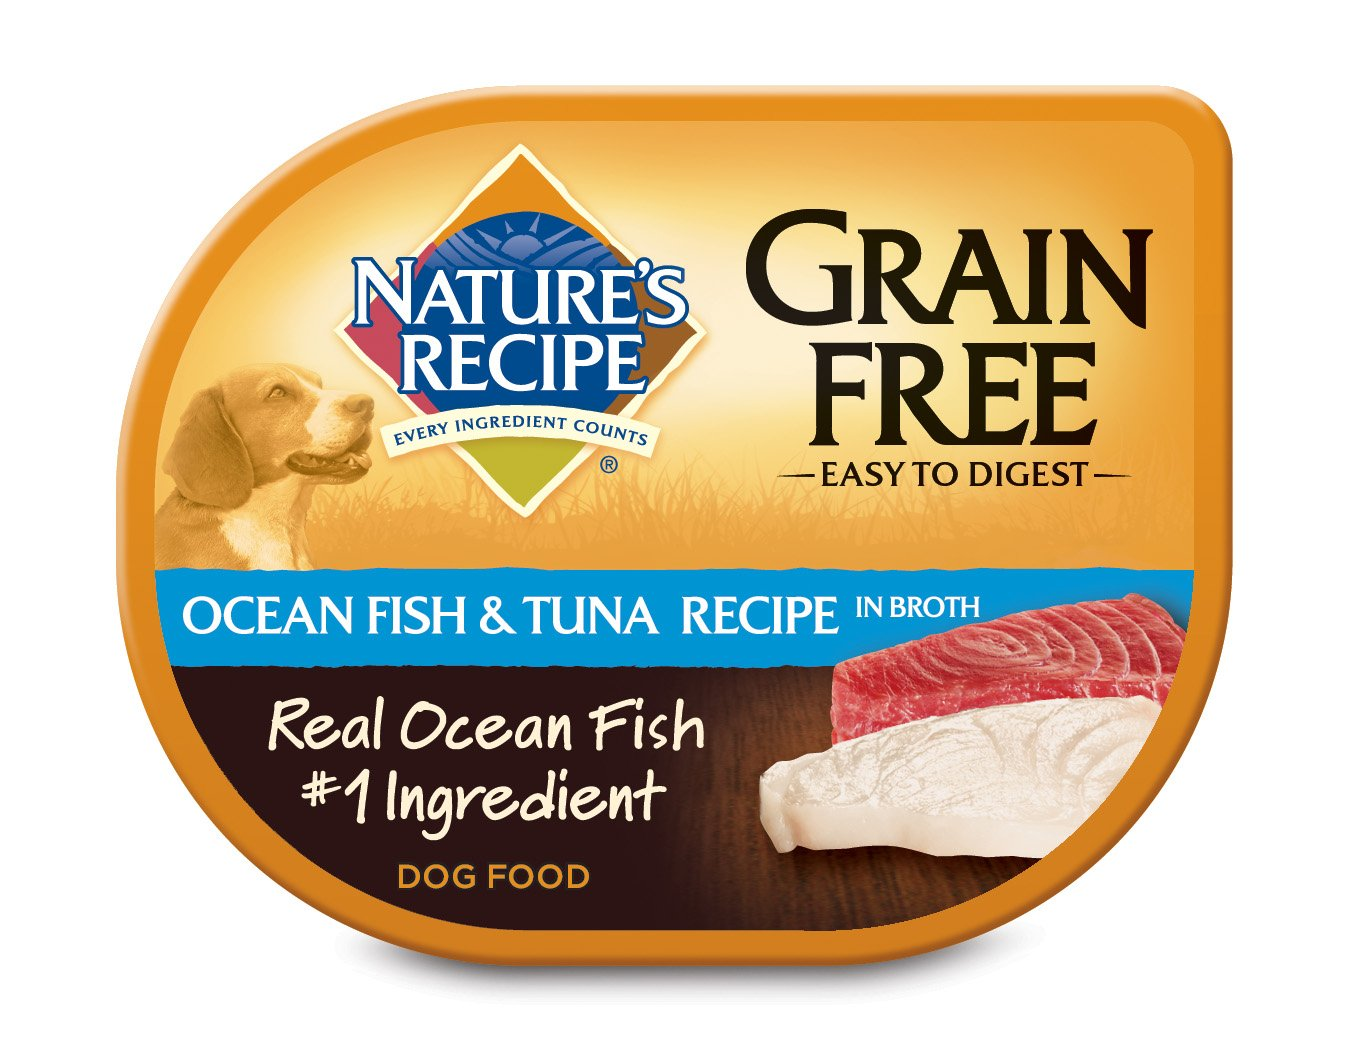 Nature's Recipe Grain Free Wet Dog Food, Ocean Fish & Tuna Recipe in Broth, 2.75 oz (Pack of 24) by Nature's Recipe